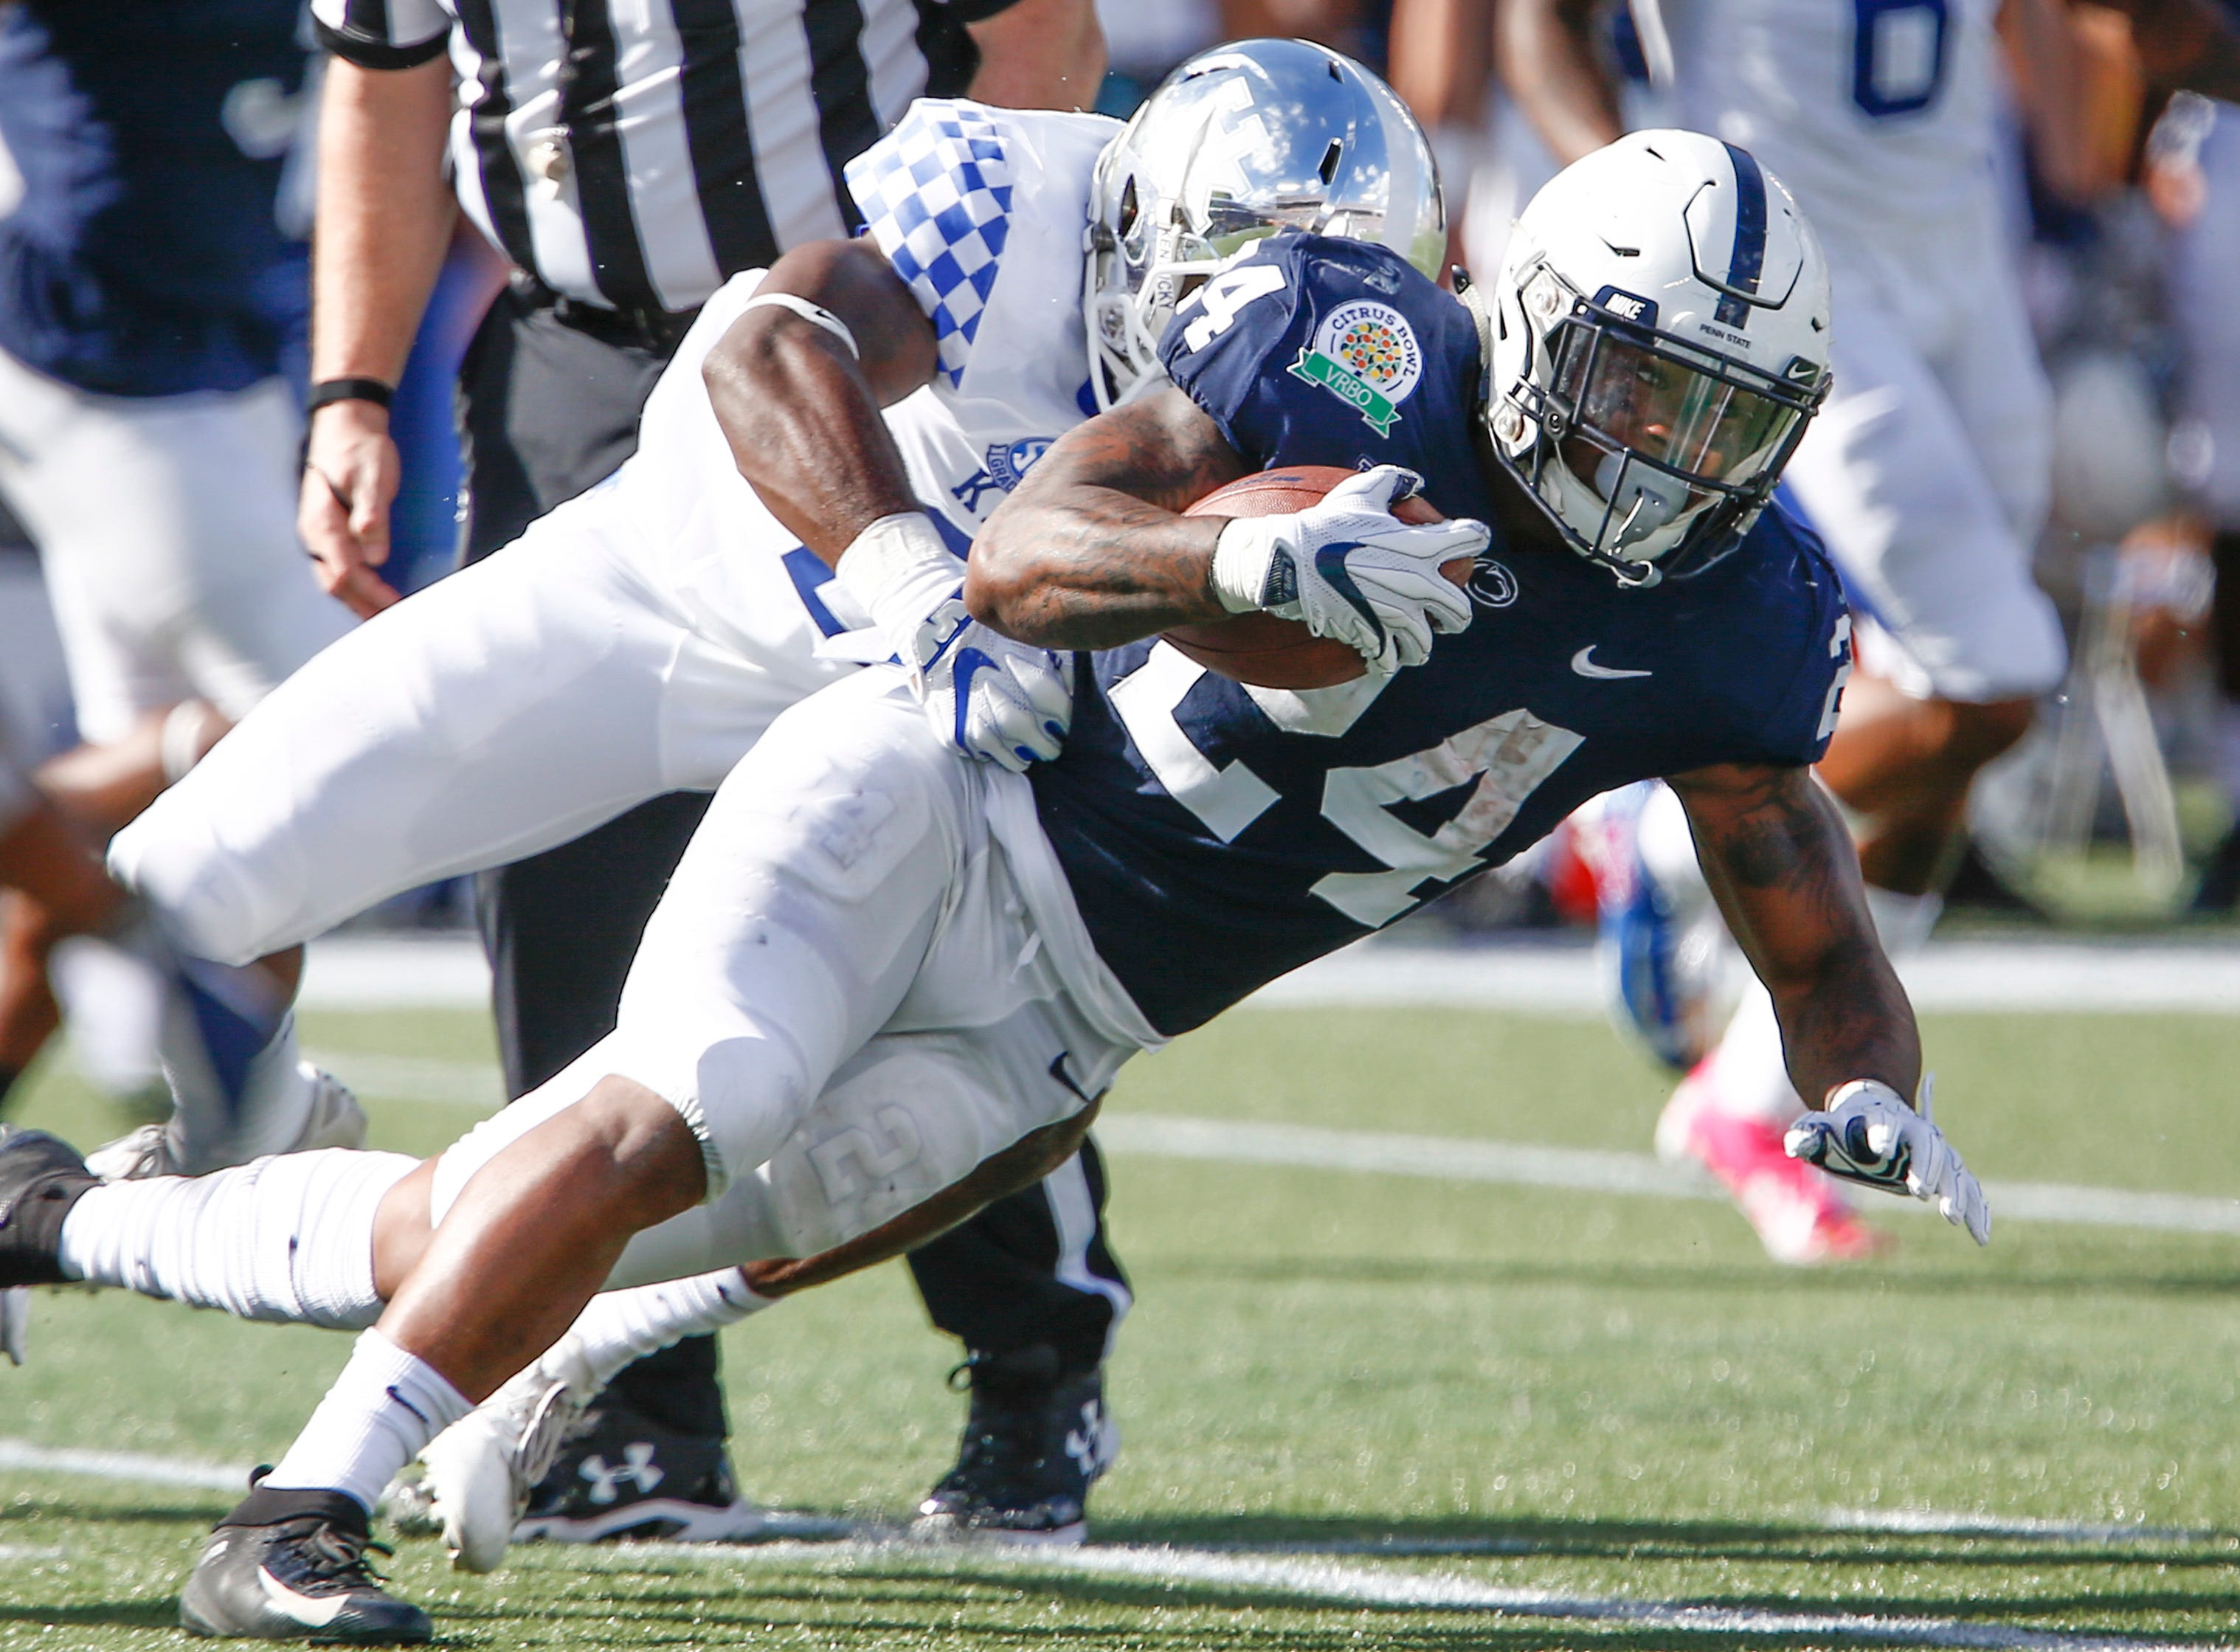 Jan 1, 2019; Orlando, FL, USA; Kentucky Wildcats linebacker Chris Oats (22) tackles Penn State Nittany Lions running back Miles Sanders (24) during the second quarter in the 2019 Citrus Bowl at Camping World Stadium. Mandatory Credit: Reinhold Matay-USA TODAY Sports